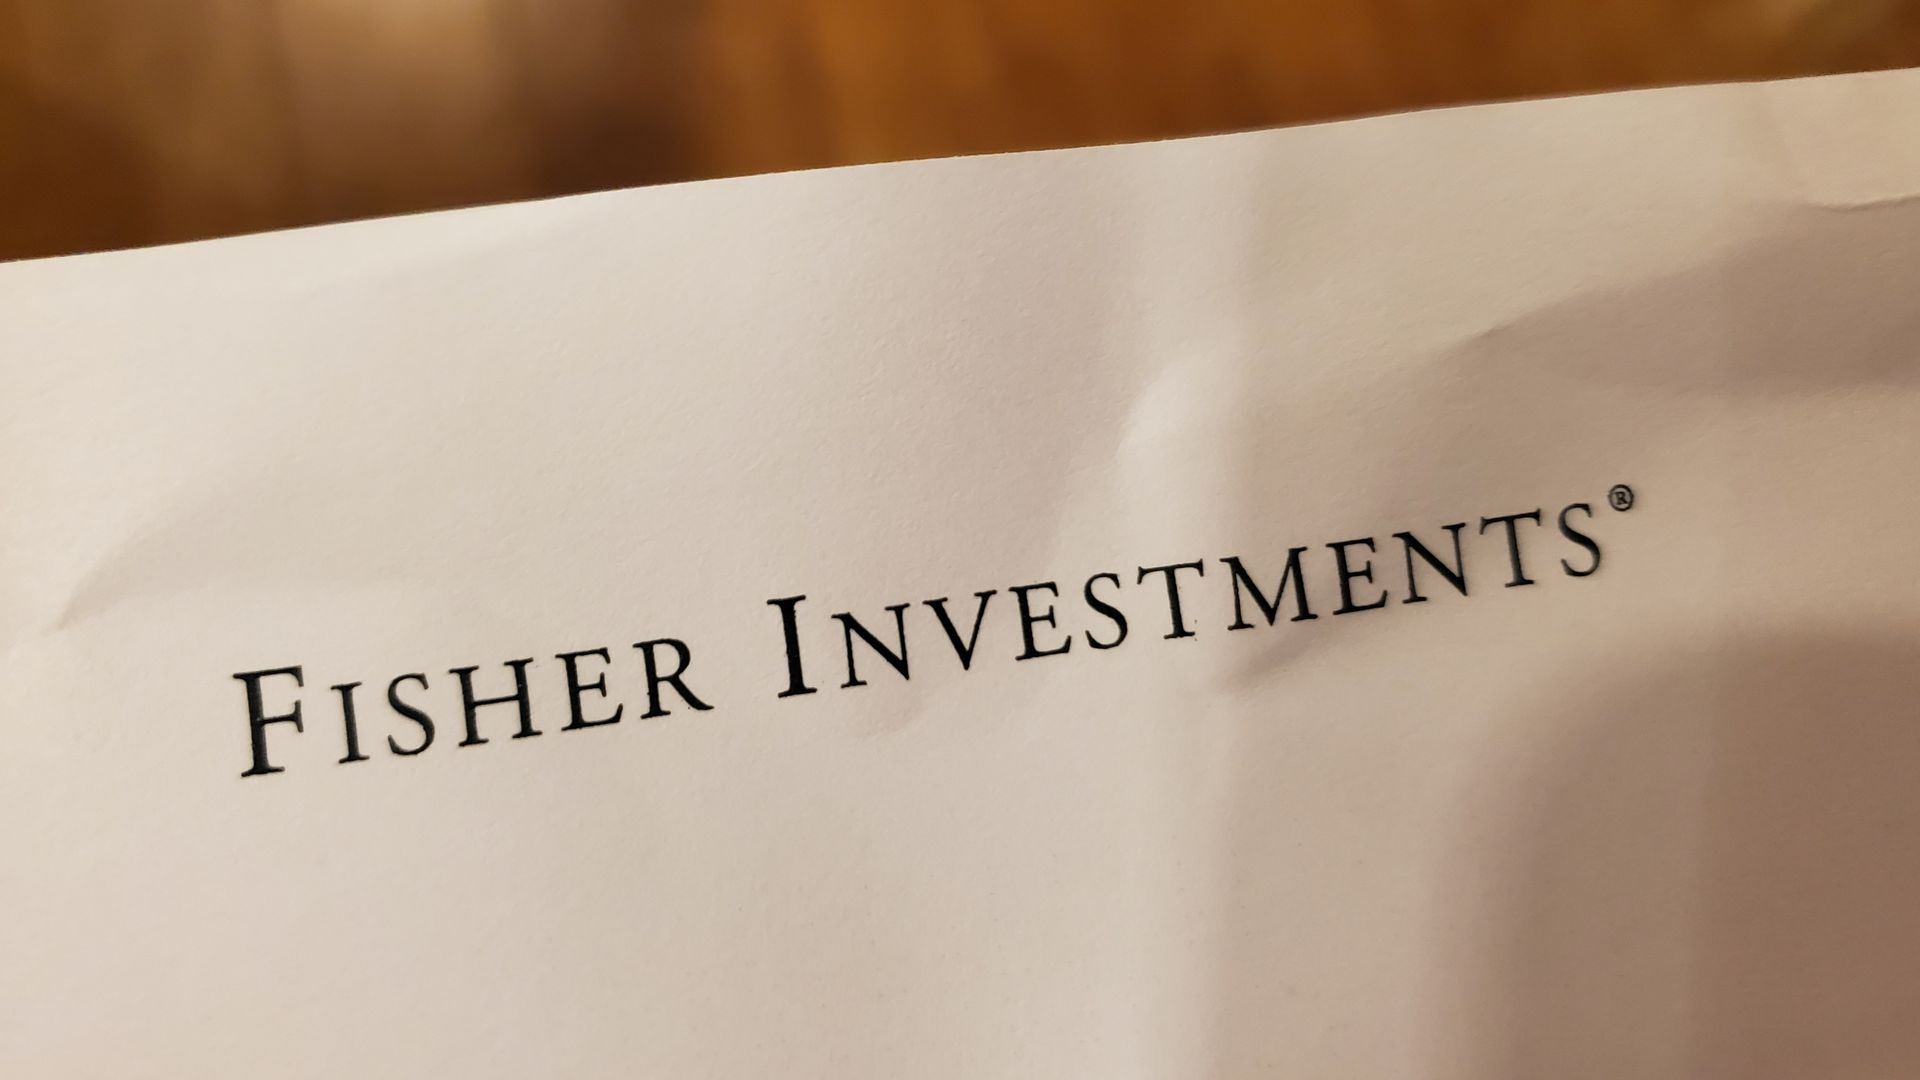 Close-up of logo for financial management company Fisher Investments on paper on light wooden background.